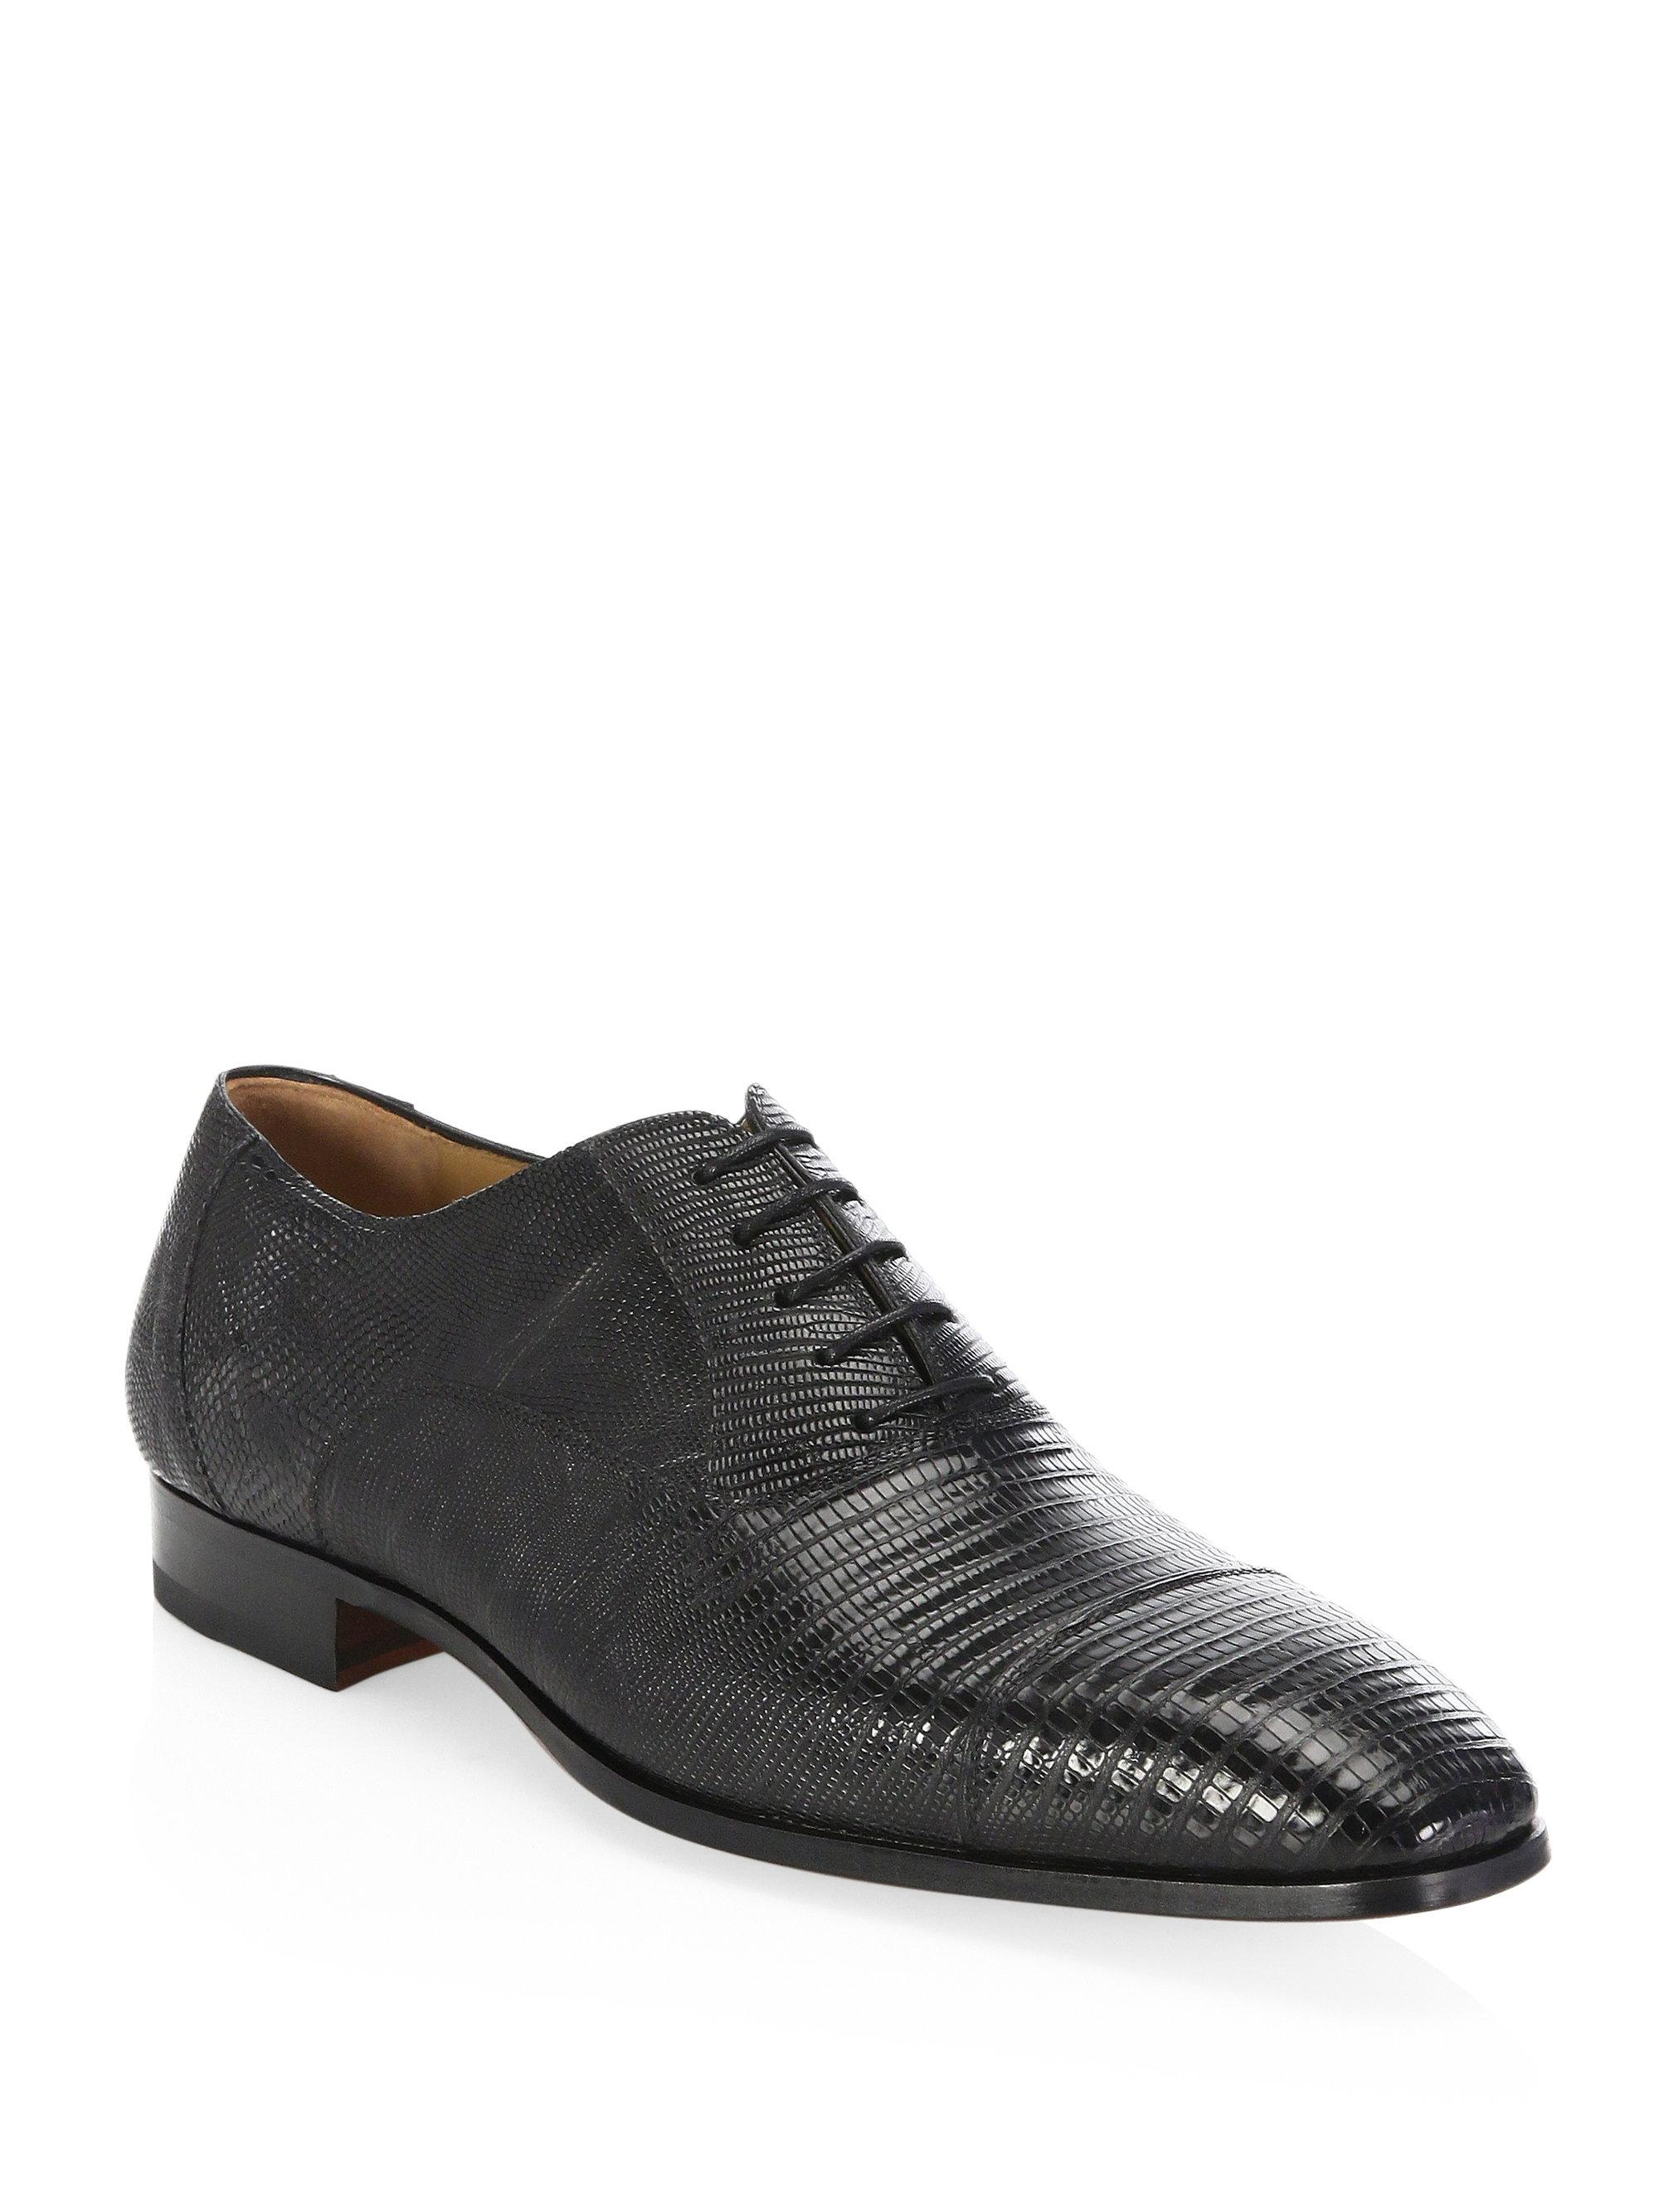 Saks Fifth Avenue COLLECTION BY MAGNANNI Lizard Monk Cap Toe Oxfords oNaN9rGDe